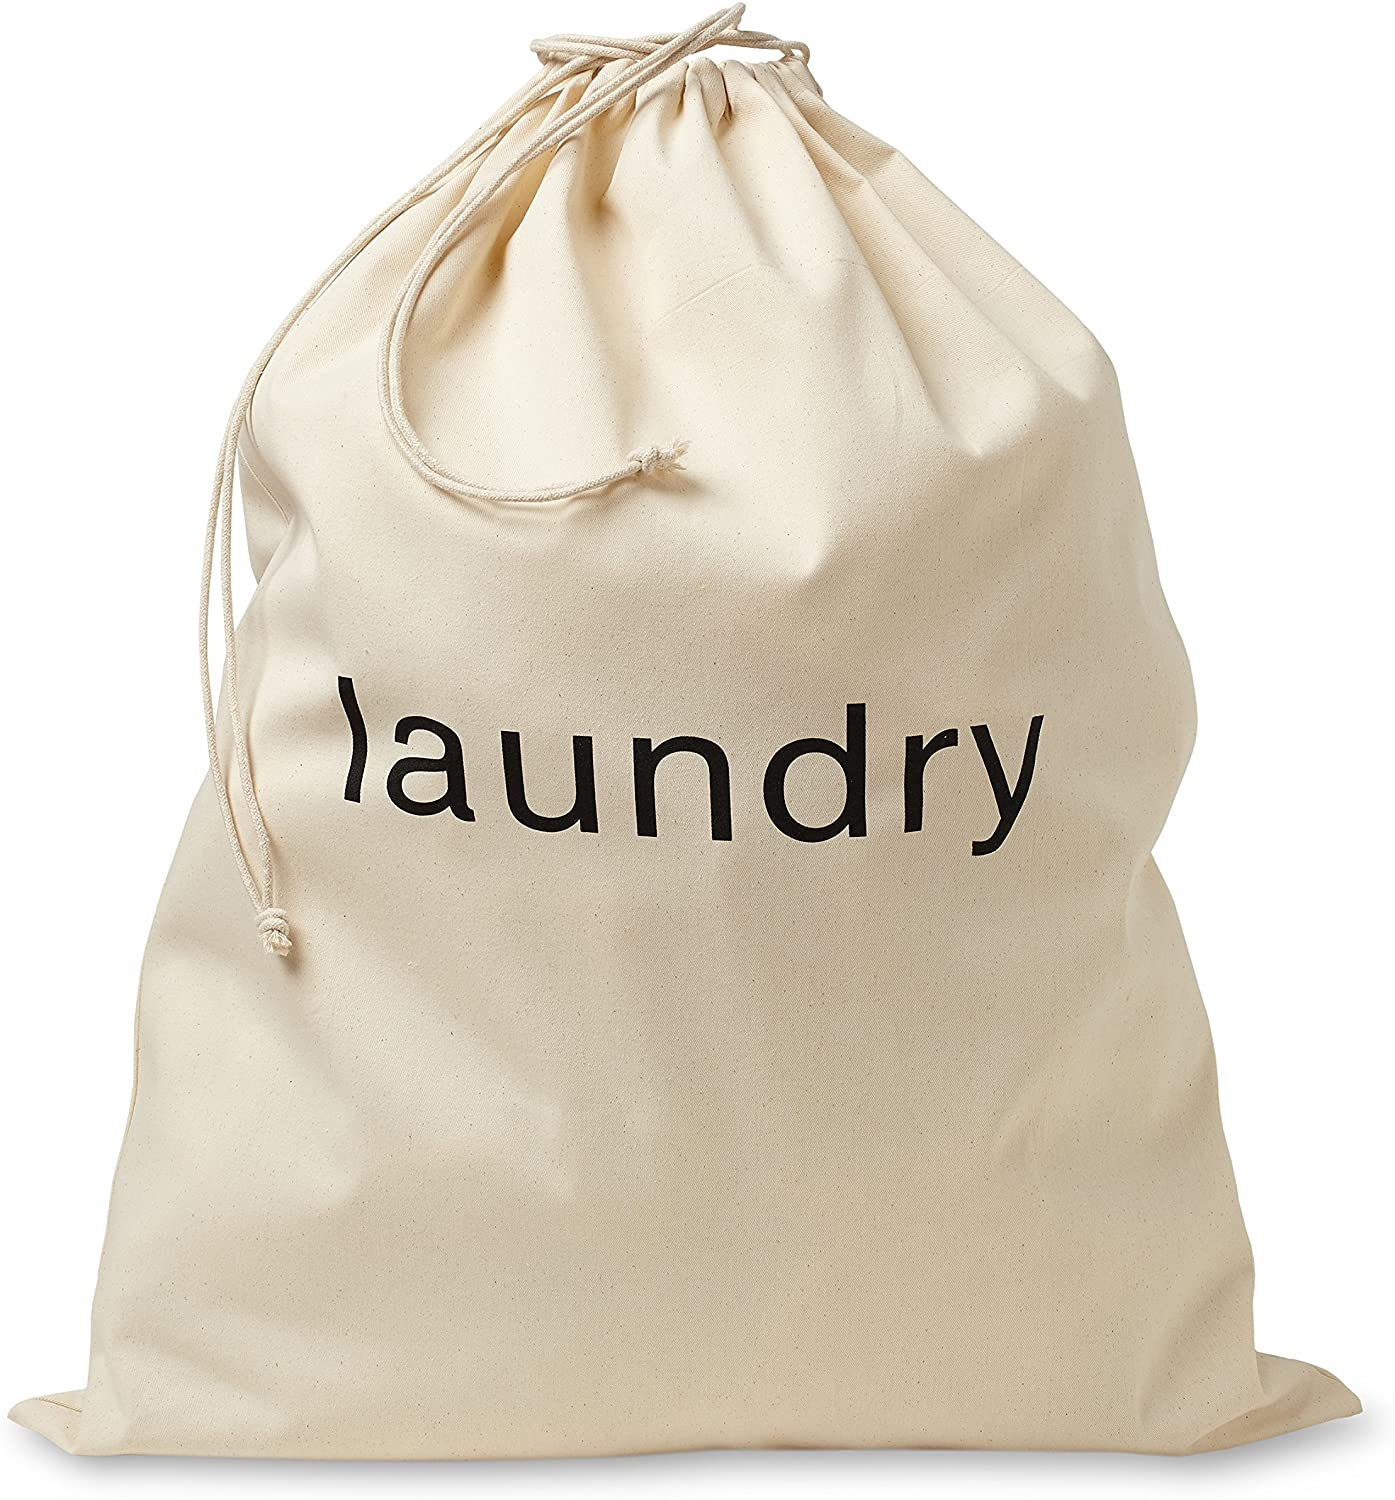 FABBPRO Cotton Canvas Cloth Fabric Laundry Bag – Stylish & Portable Natural Biodegradable Drawstring Bag – Ideal for Hotels, Airbnb's, Rental Spaces, Vacation Homes & Even Travel